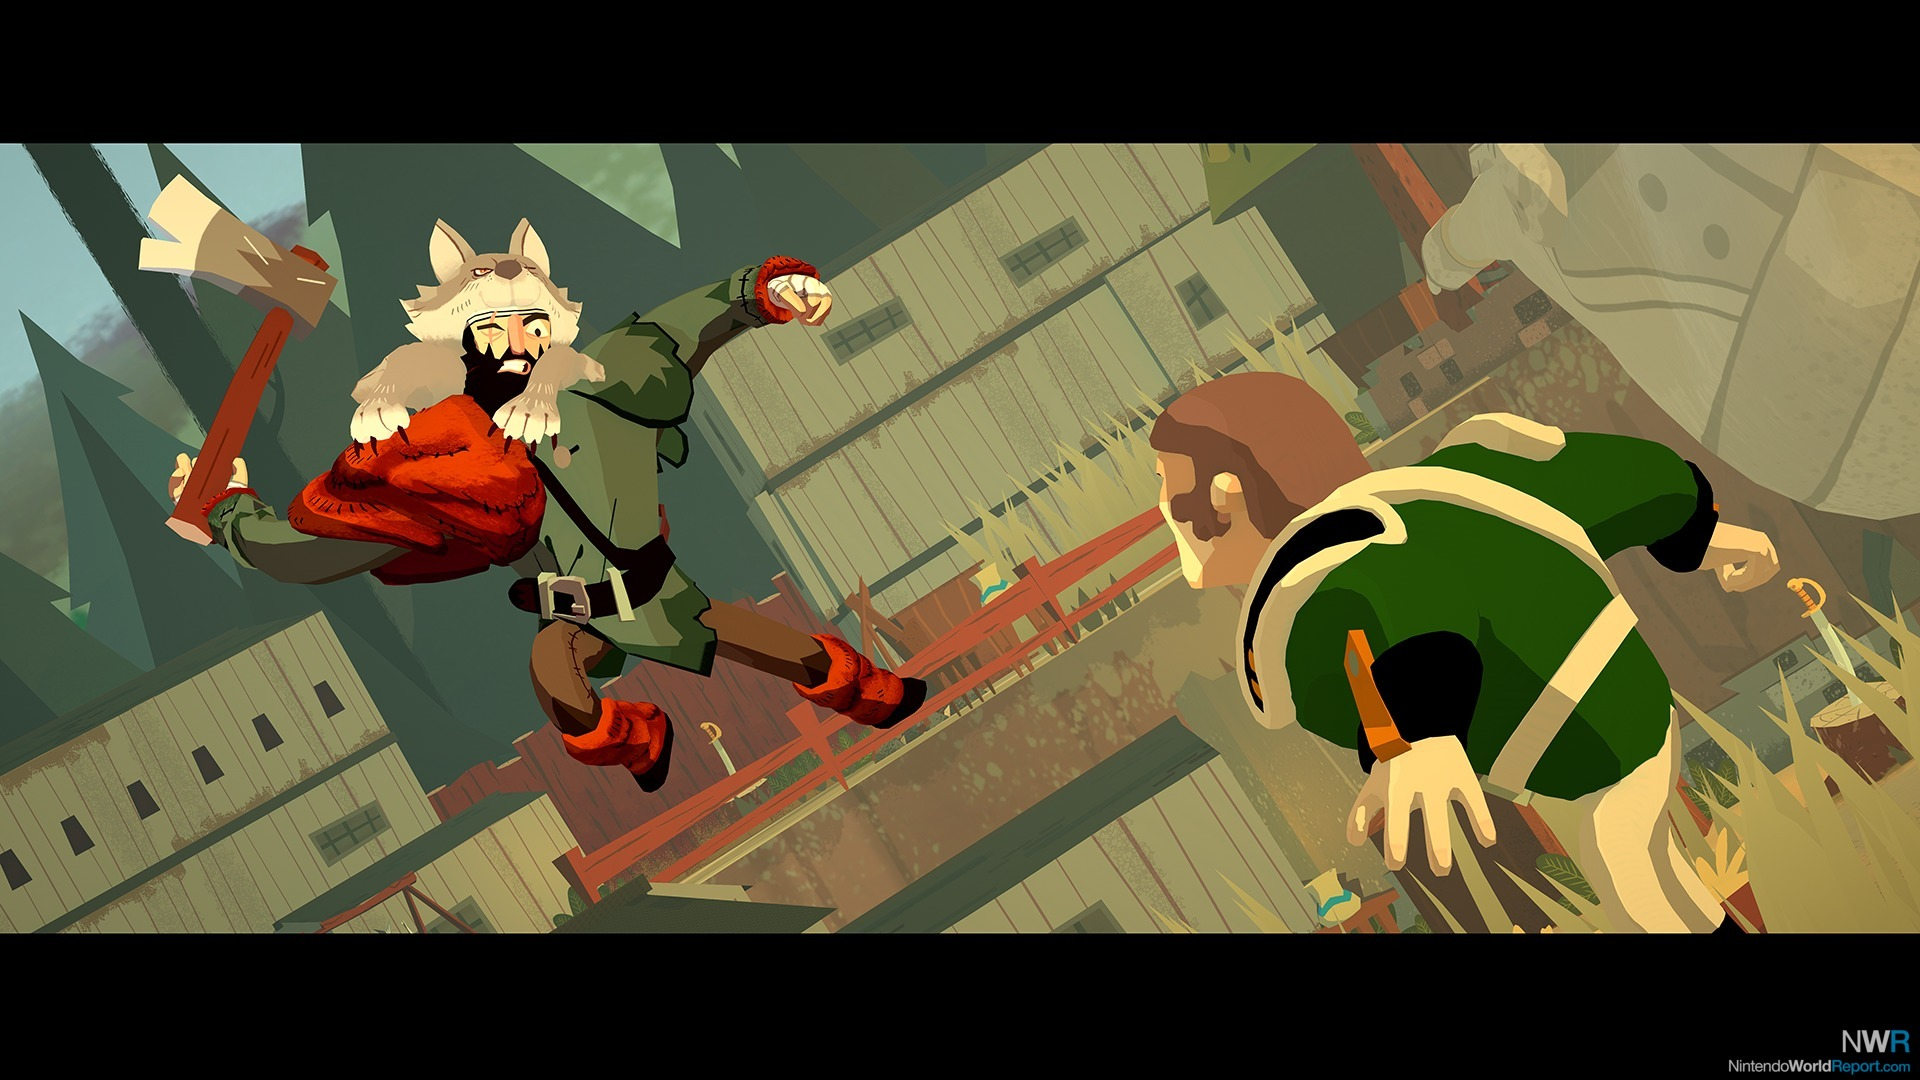 Bloodroots Tosses The Revenant, Hotline Miami, and Super Mario Bros. 3 in a Blender